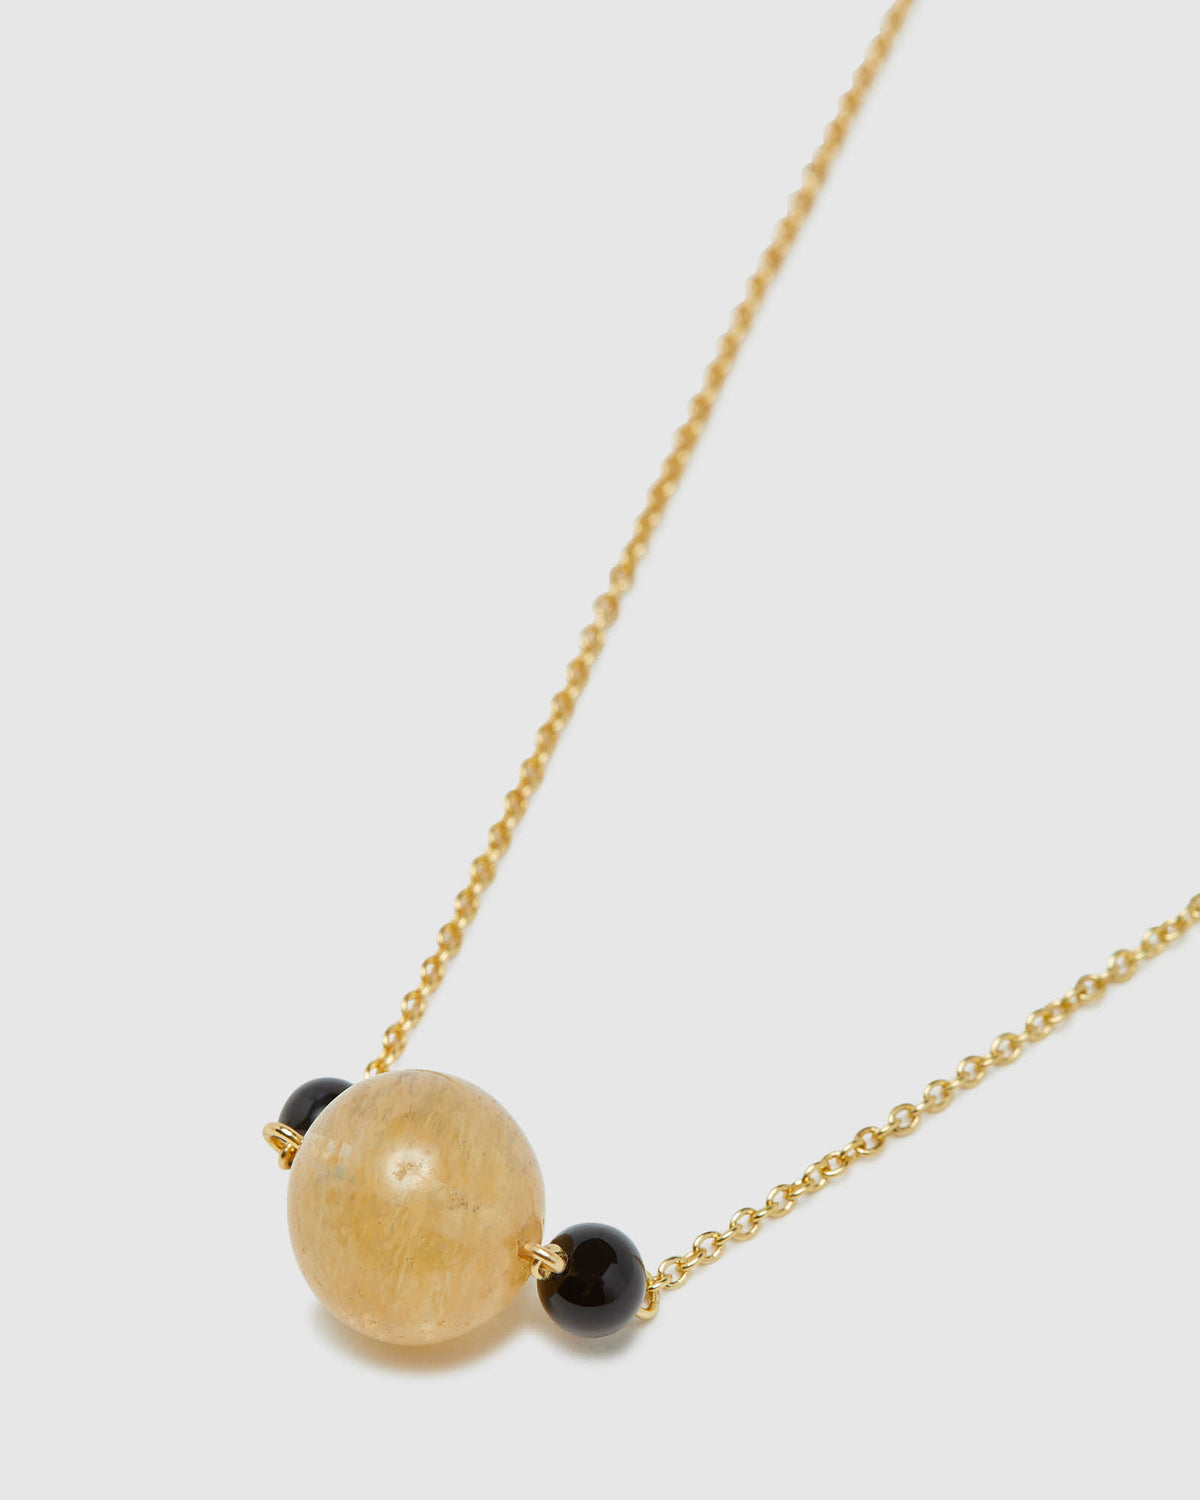 SERINA QUARTZ & ONYX NECKLACE PALE GOLD/QUARTZ/ONYX